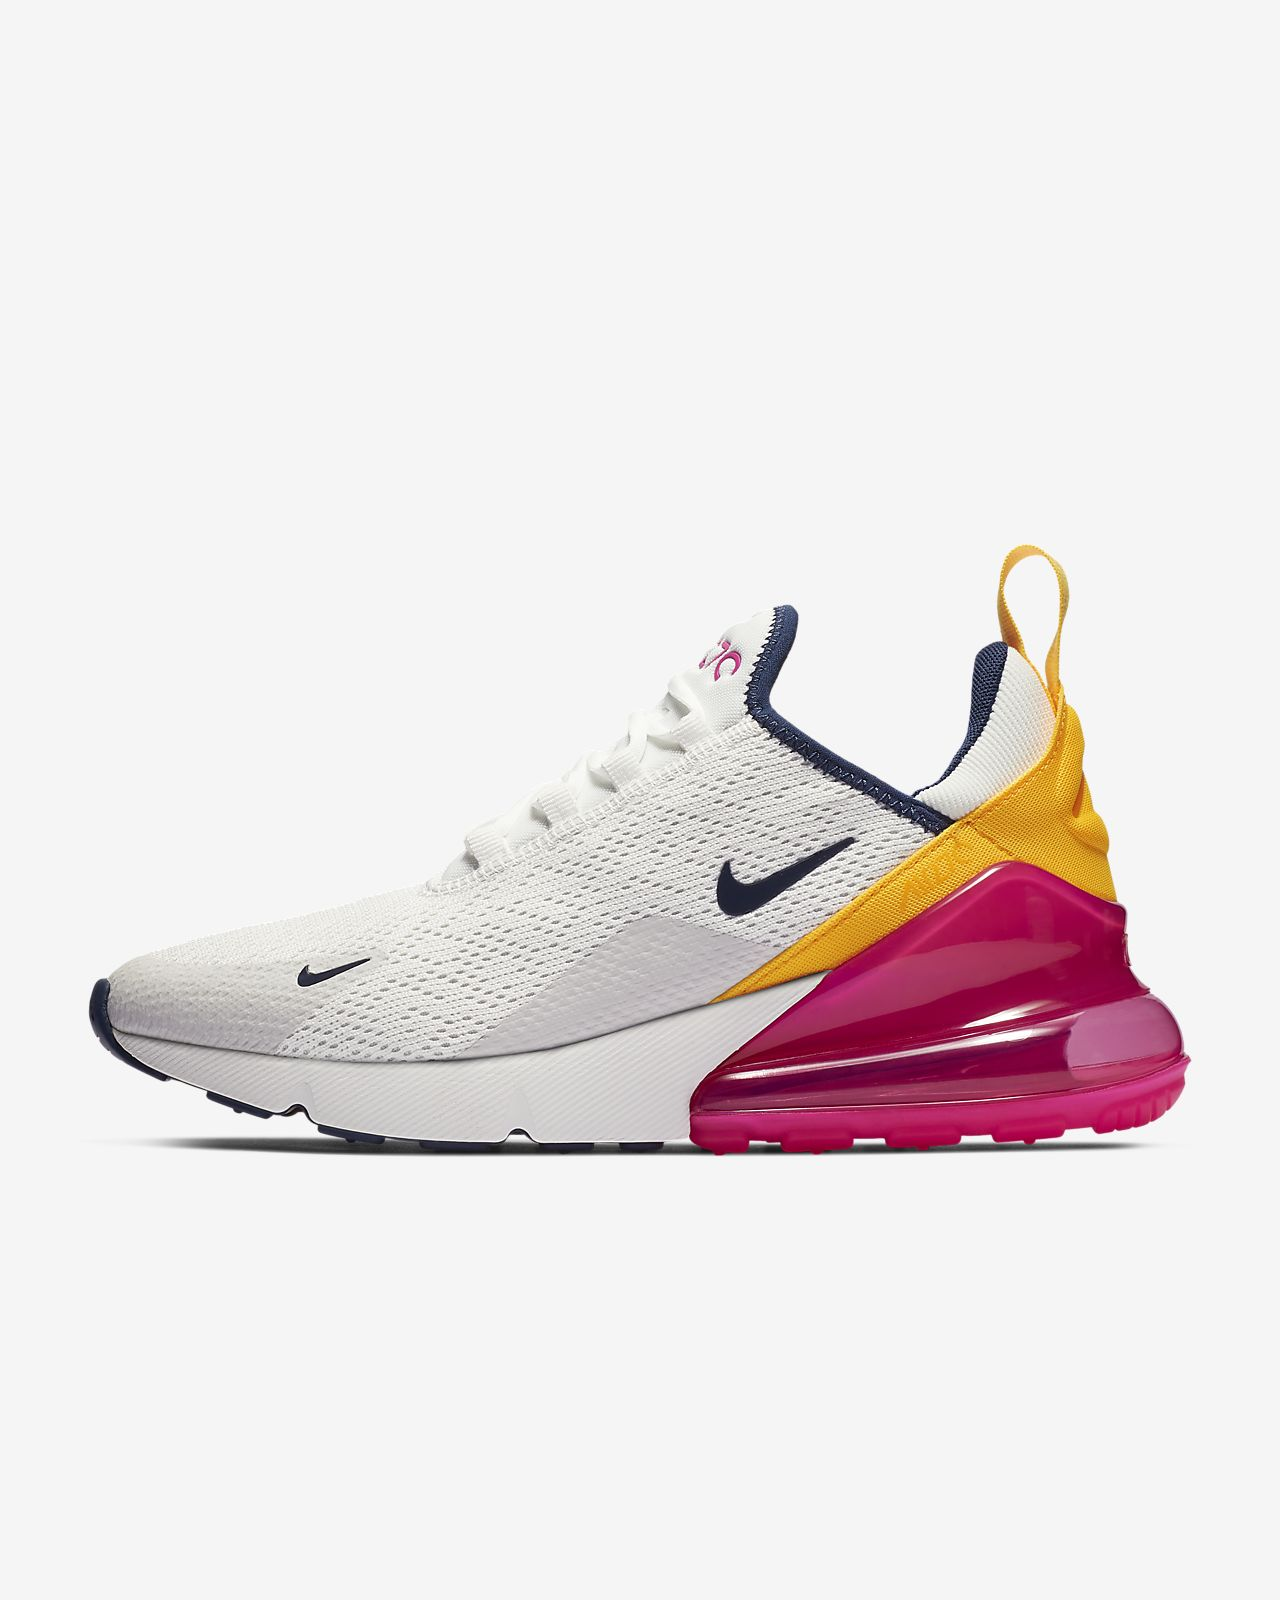 new products 00521 7dd31 ... Nike Air Max 270 Premium Women s Shoe